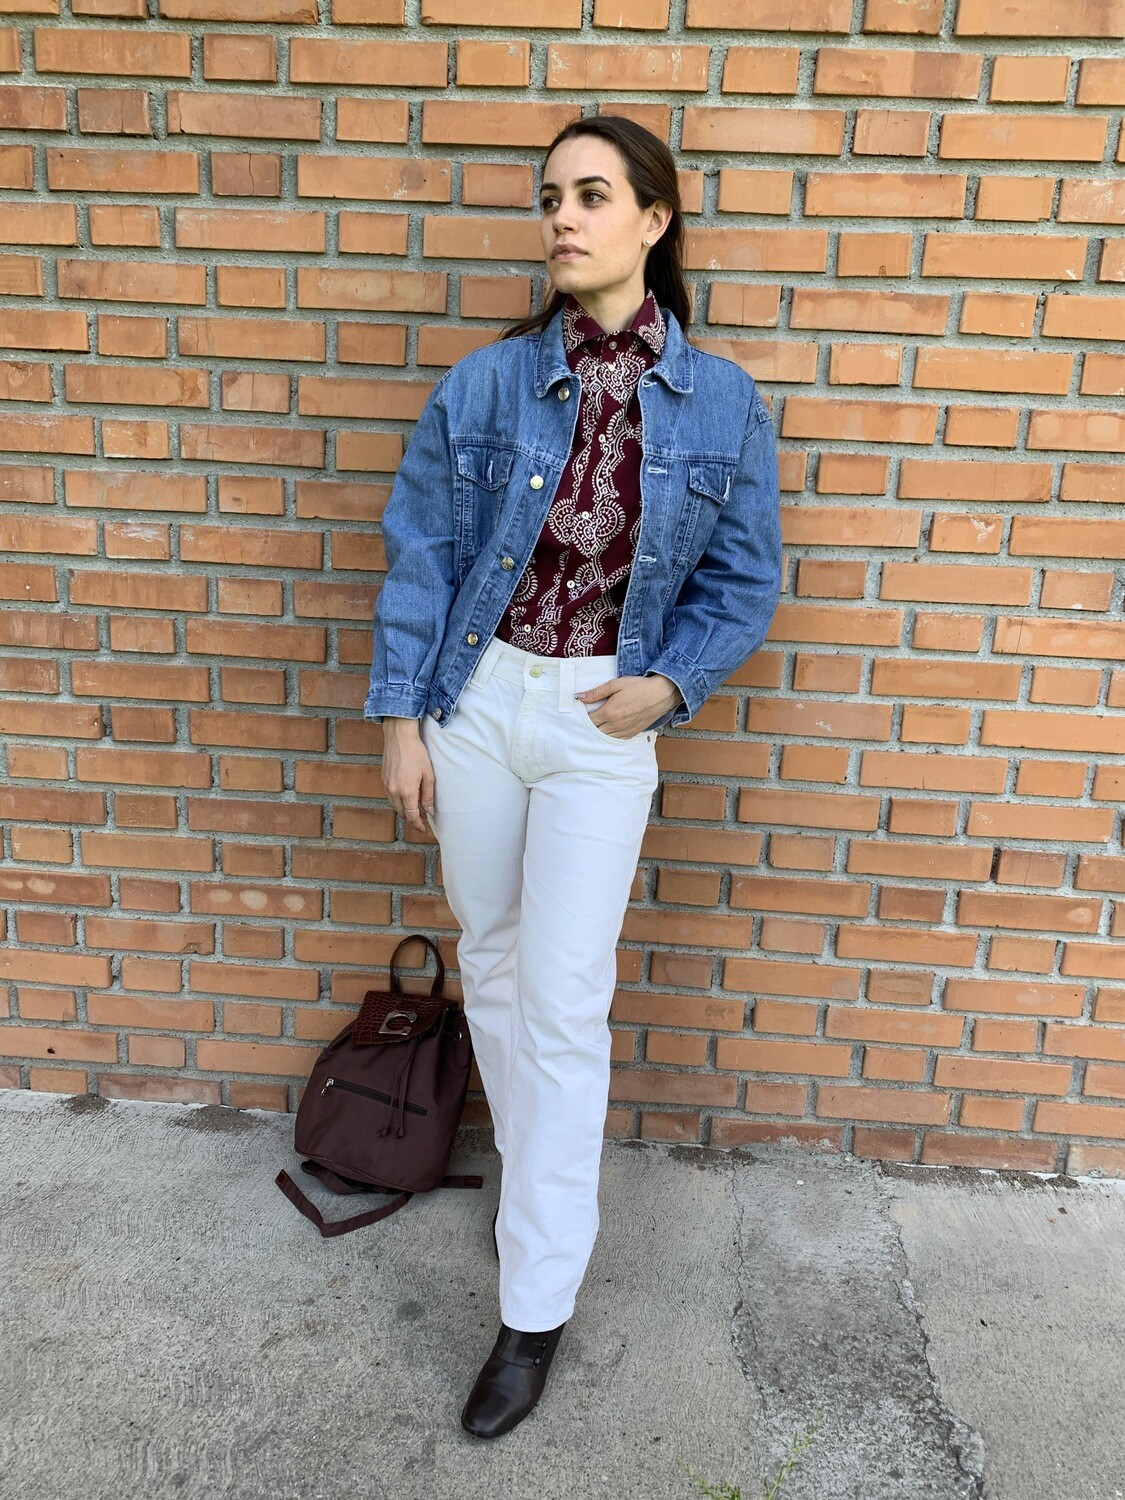 Vintage Levi's 505 jeans in white W29